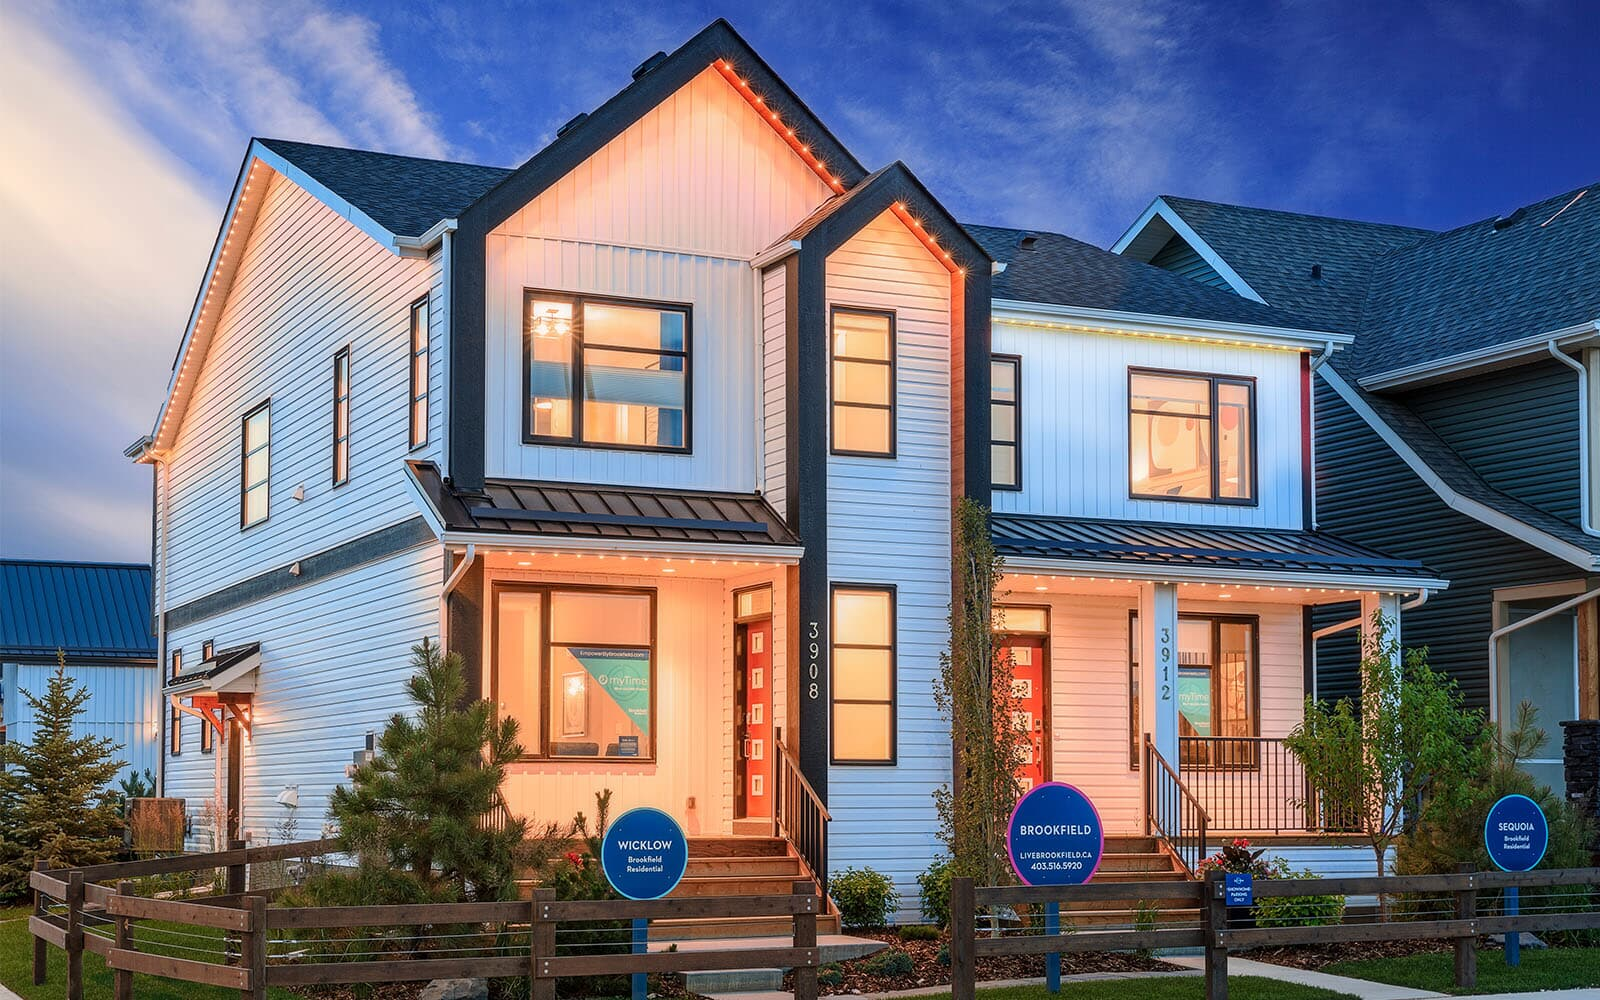 A photo of the exteriors of the Brookfield Residential Duplex Show Homes in Seton, Calgary.